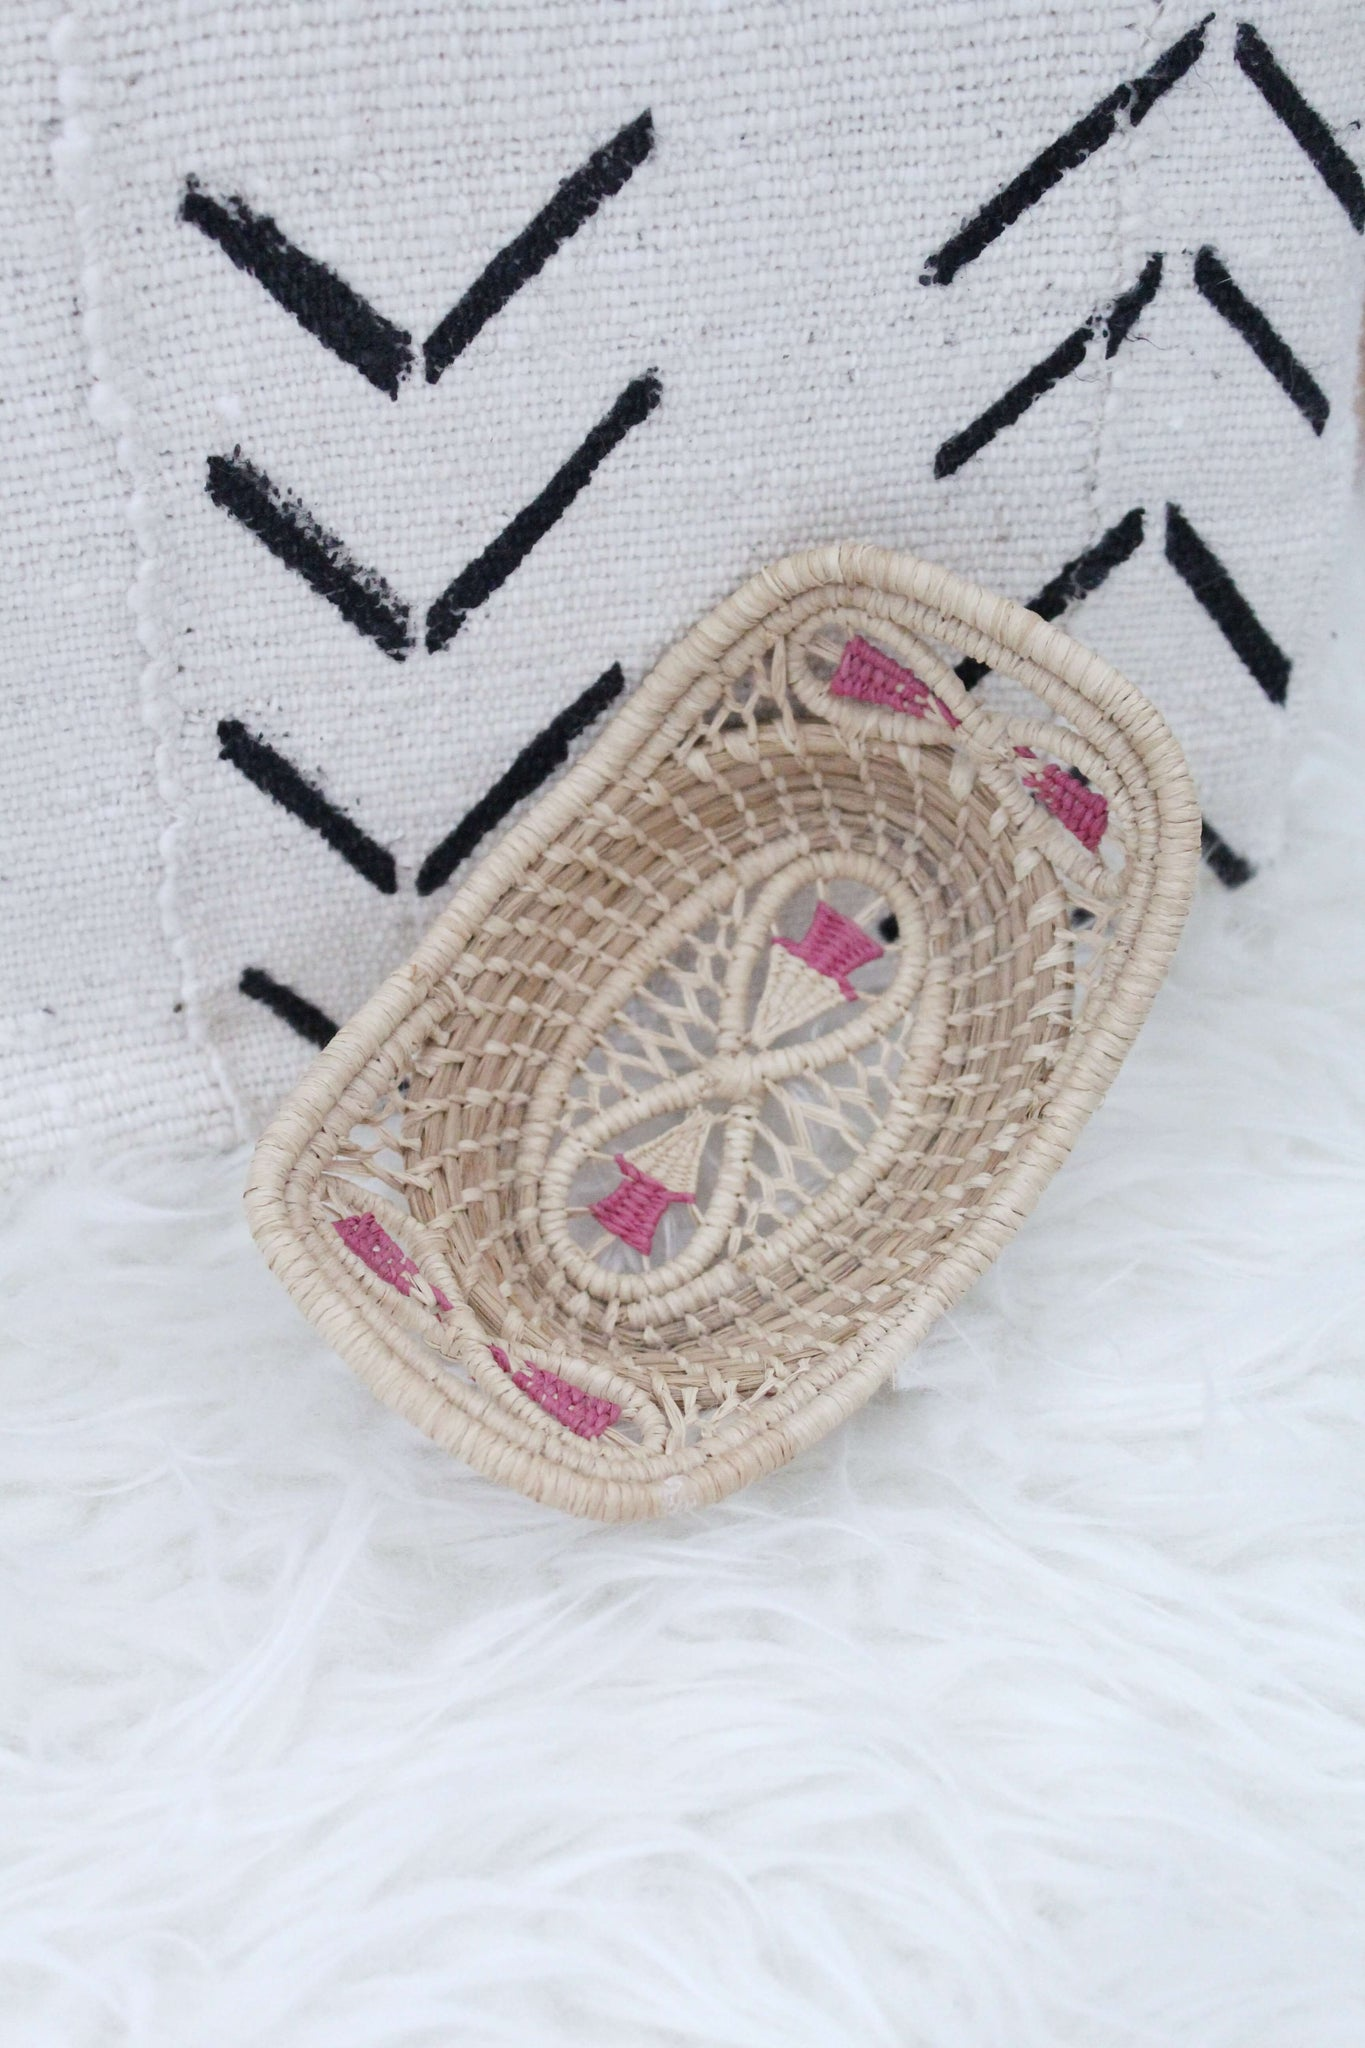 Woven Mini Tray, Home Accessories, Bedroom Decor, Home Decor - elizabeth o. vintage